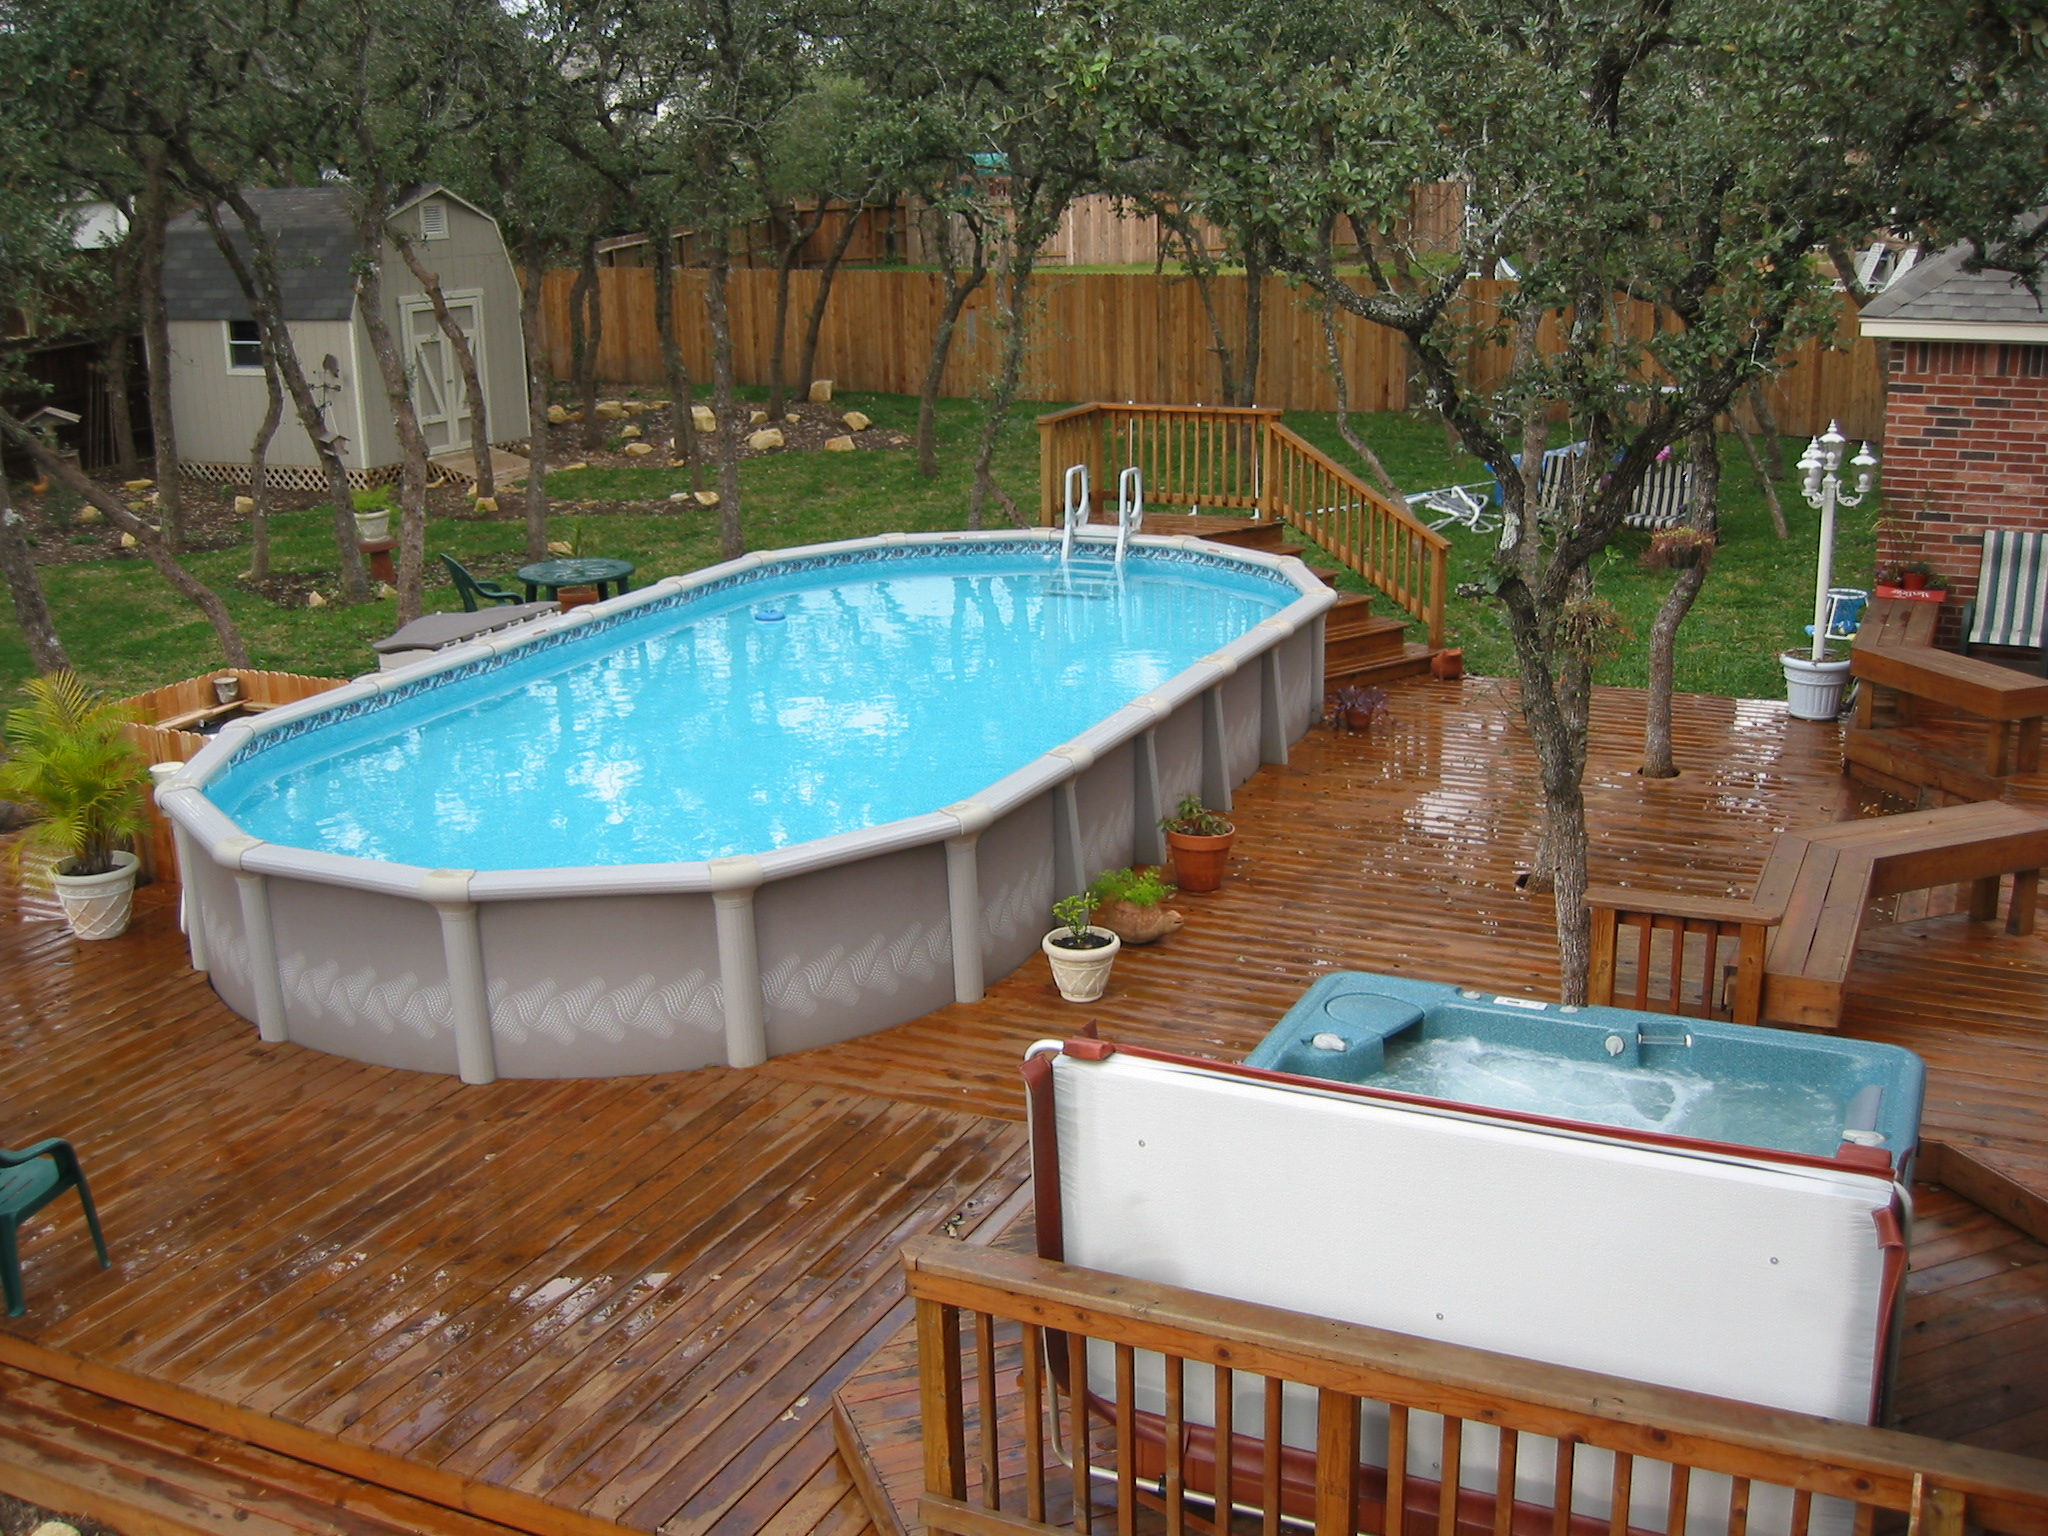 above-ground-swimming-pools-what-about-above-ground-pools-above-ground.jpg